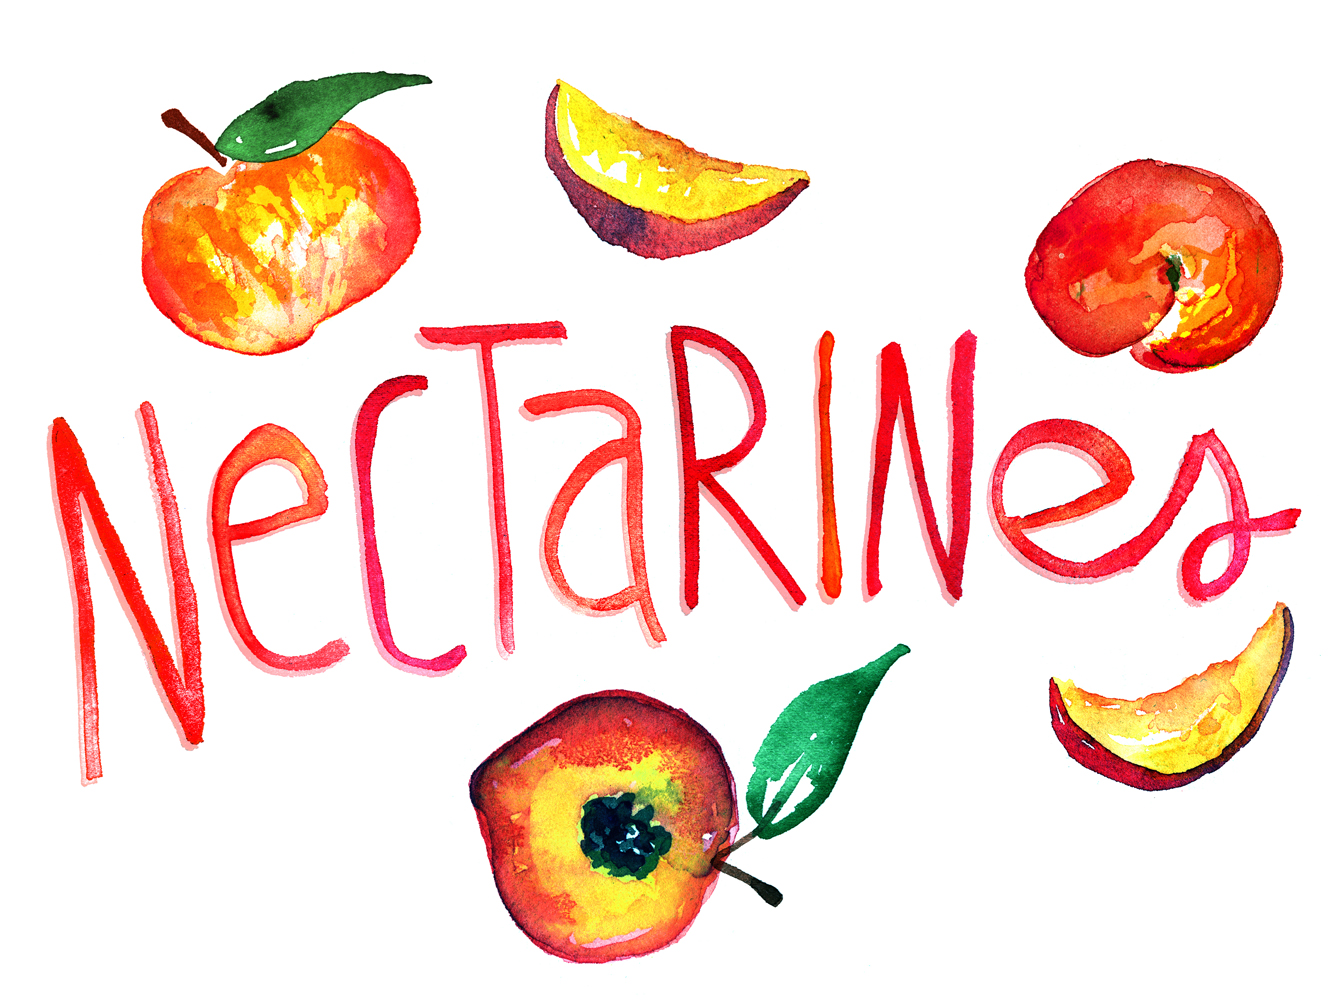 nectarines watercolor illustration